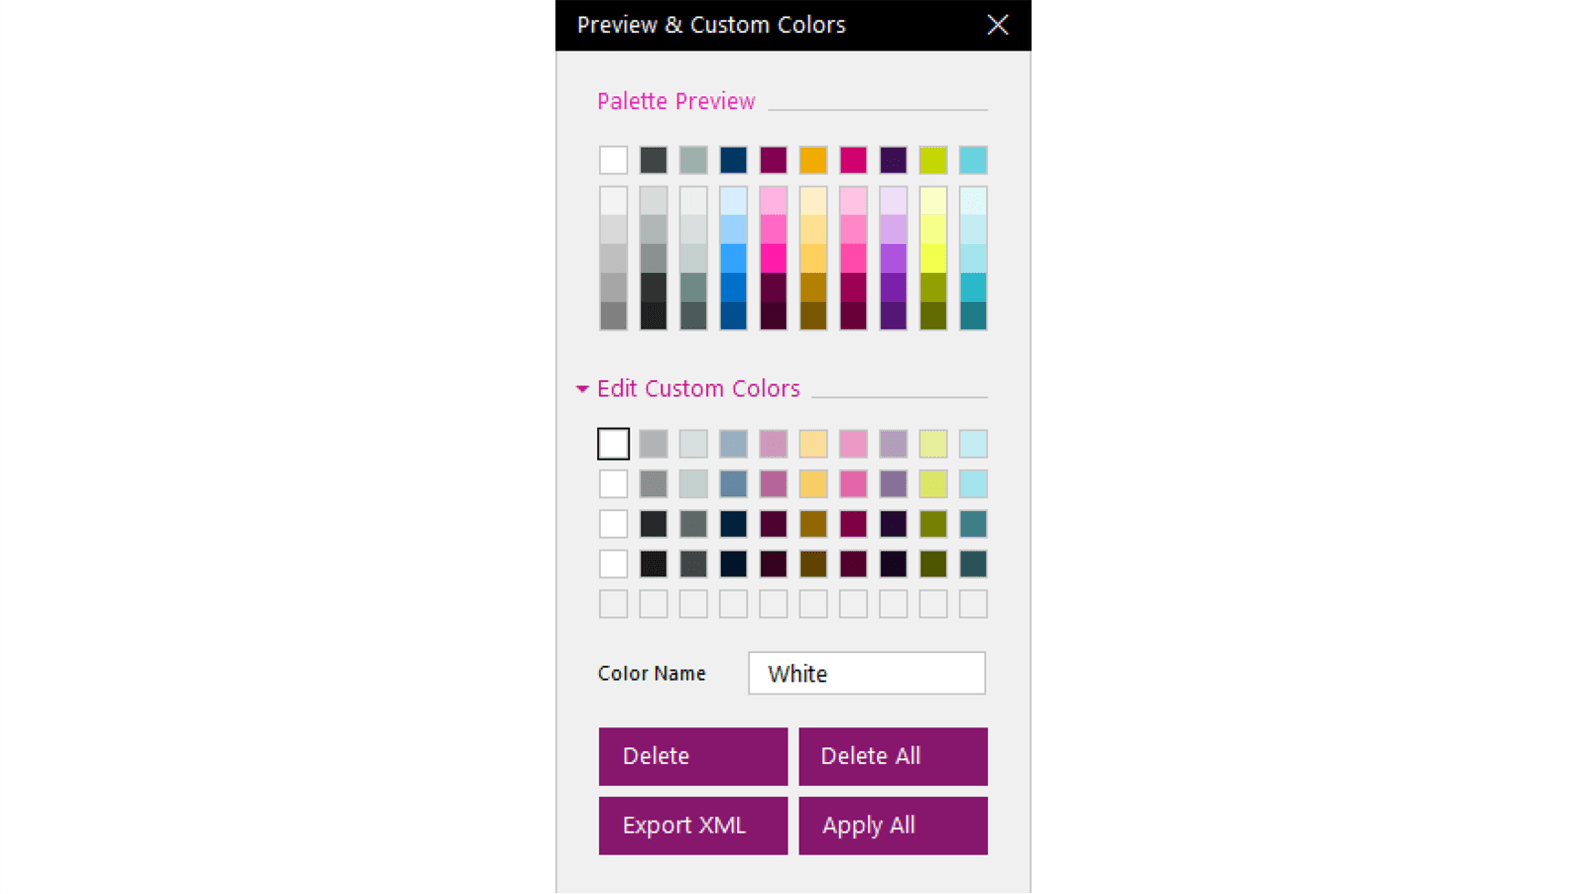 Screenshot of Preview & Custom Colors pop-up with completed custom colors panel.